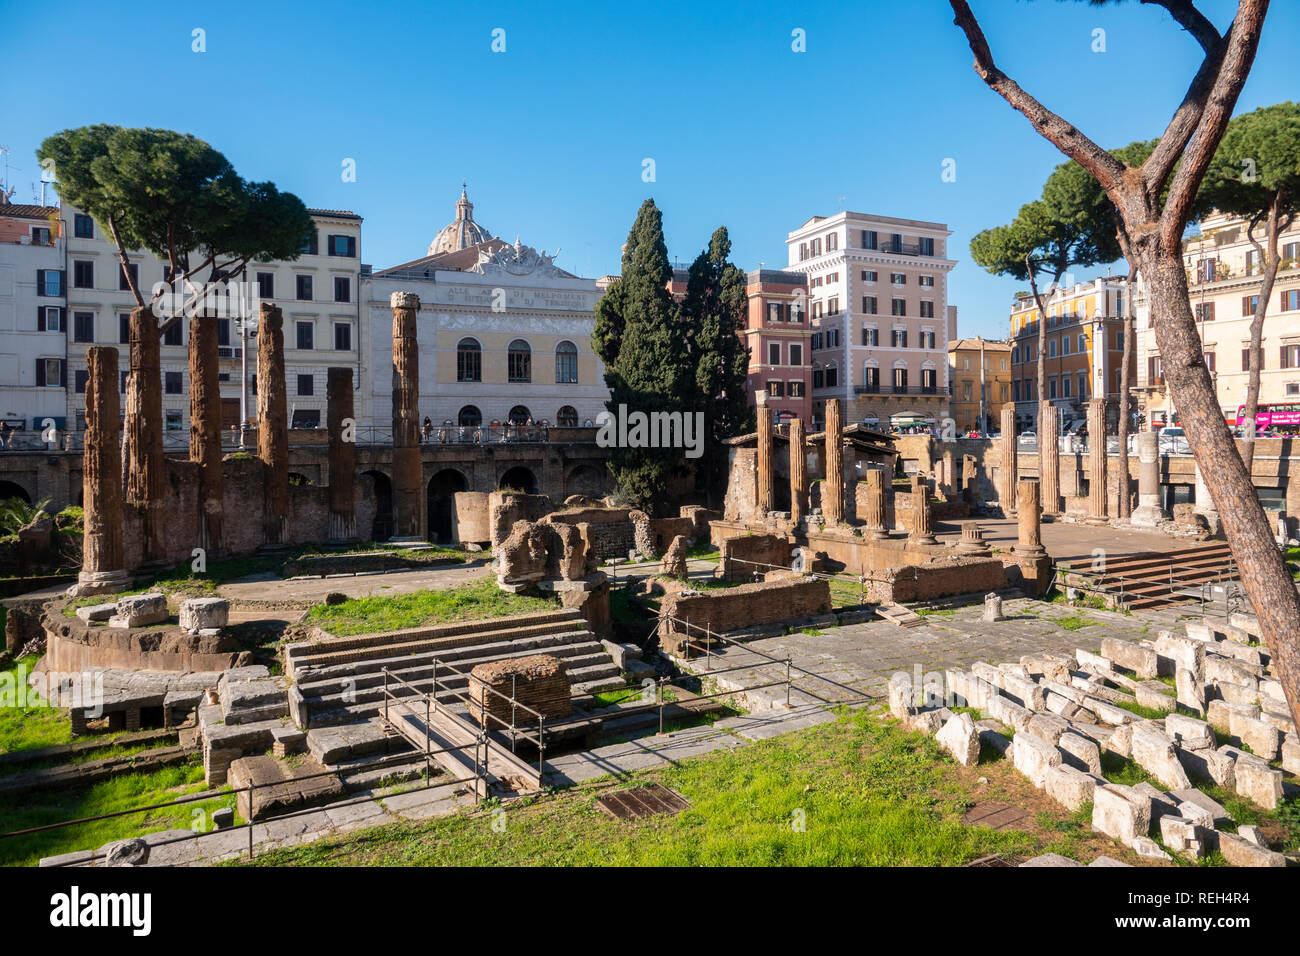 Europe Italy Rome Largo di Torre Argentina Home of the Cat Sanctuary and Roman Ruins - Stock Image